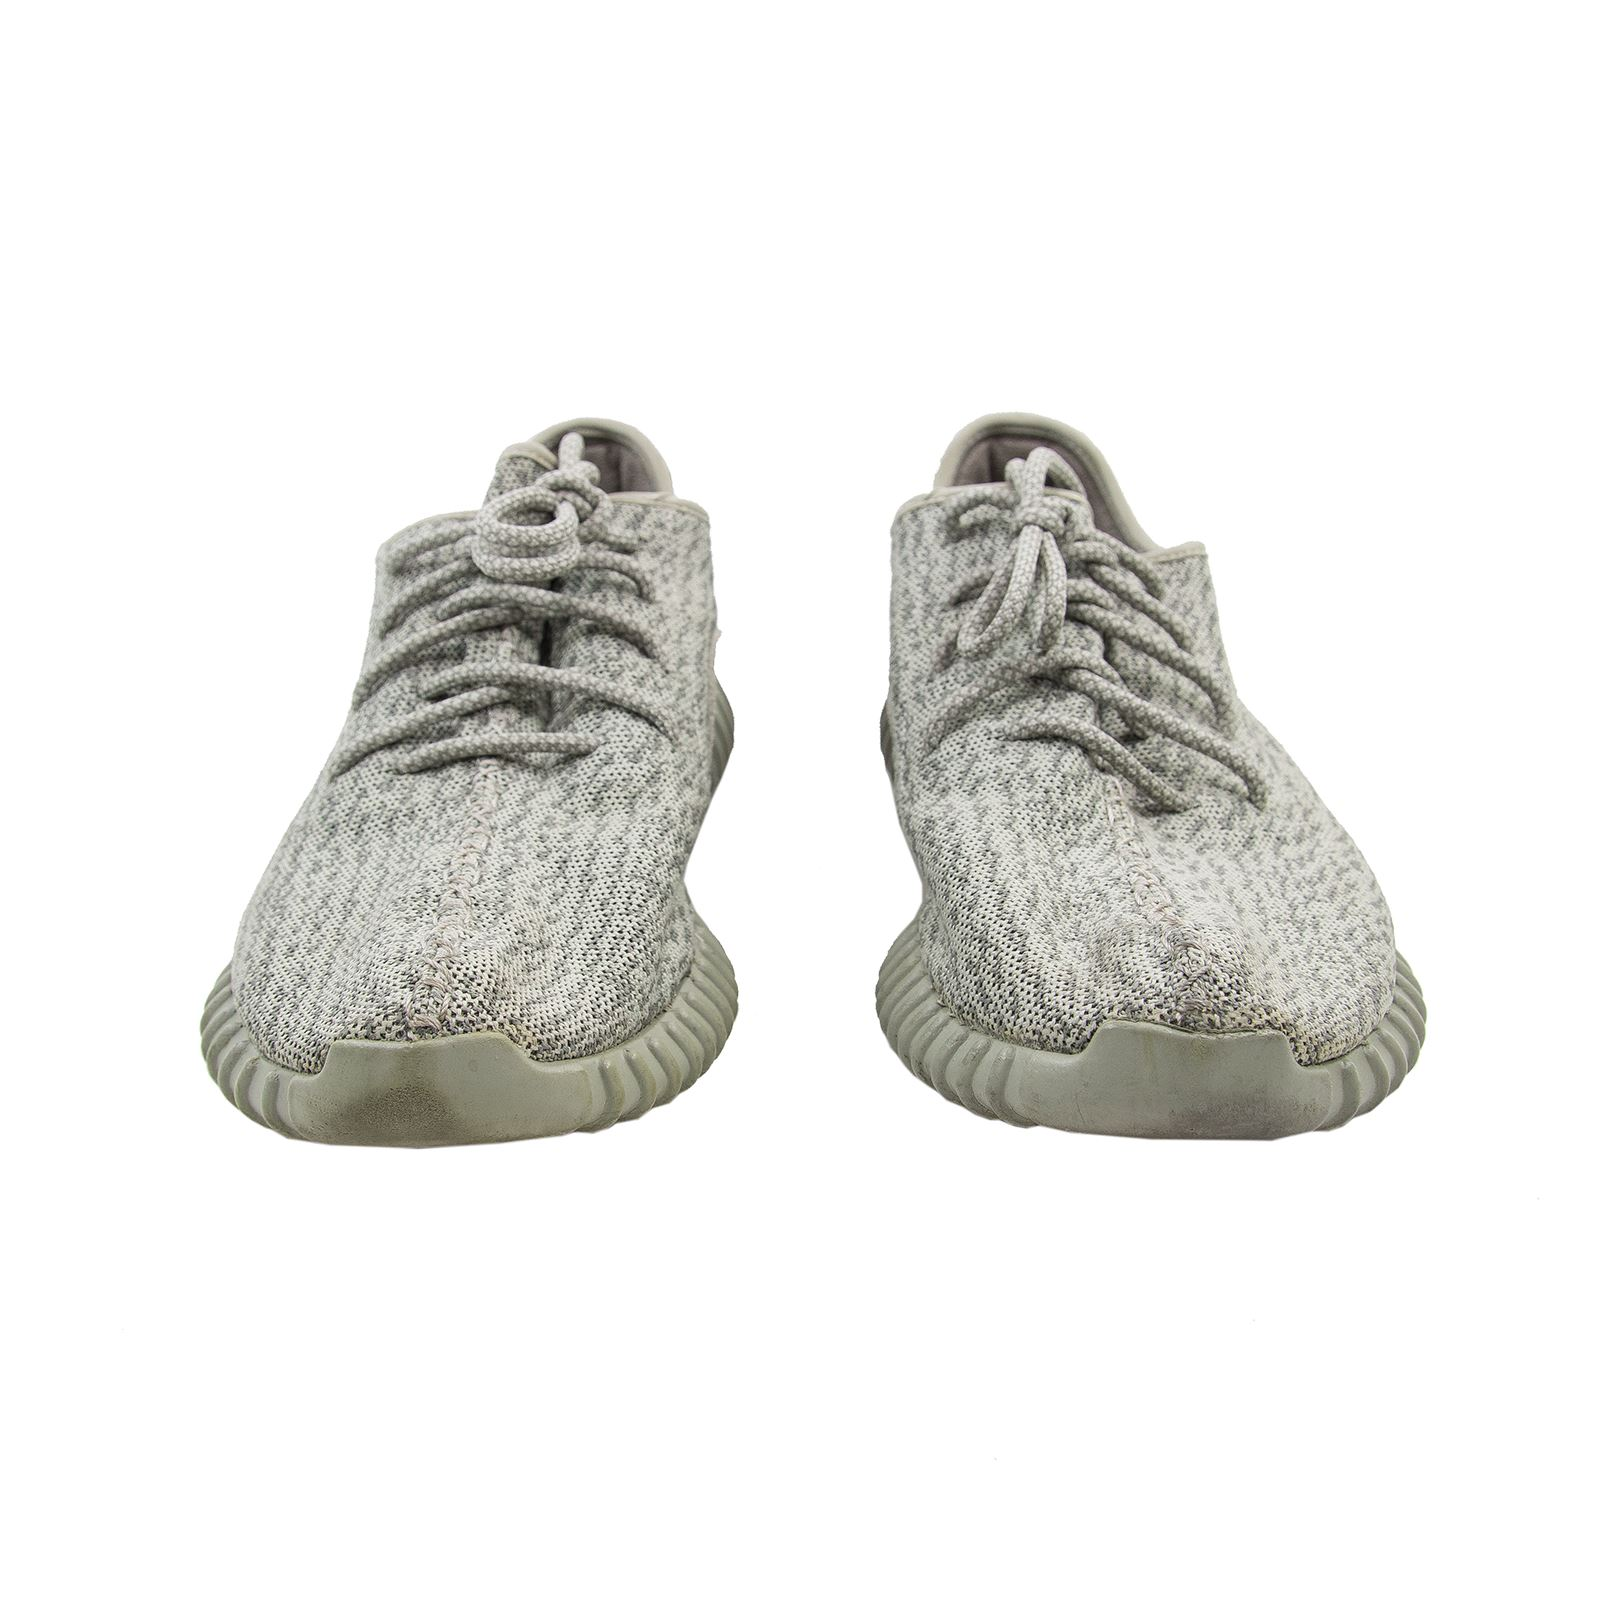 0115c69a1523 Adidas Yeezy Boost 350 Moonrock Grey AQ2660 Agagra Kanye West Sneakers  Shoes 12